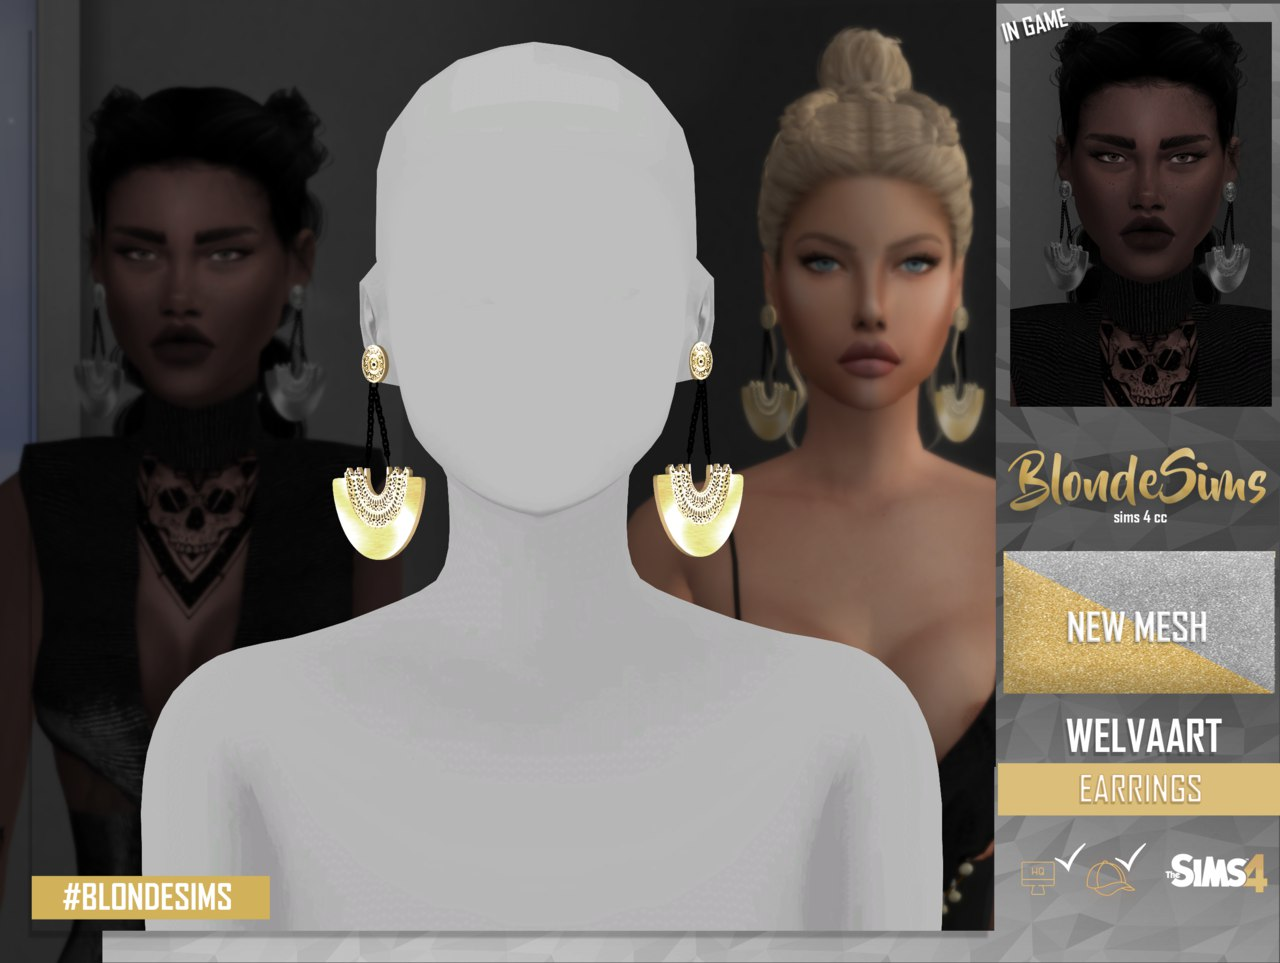 WELVART earrings by Blonde Sims